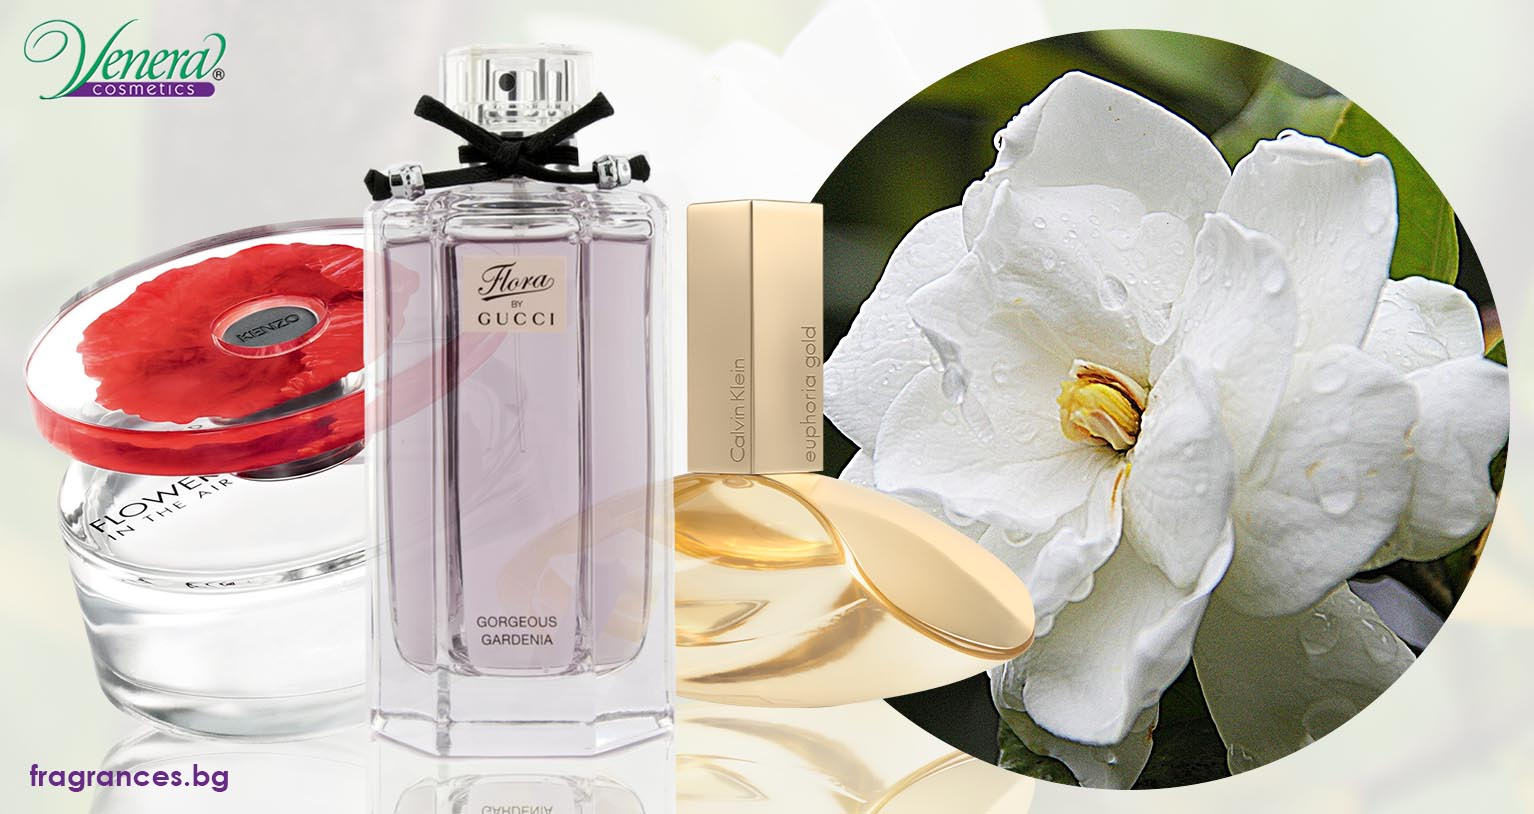 Gardenia The Delicate Scent That Brings Up The Romantic Side In